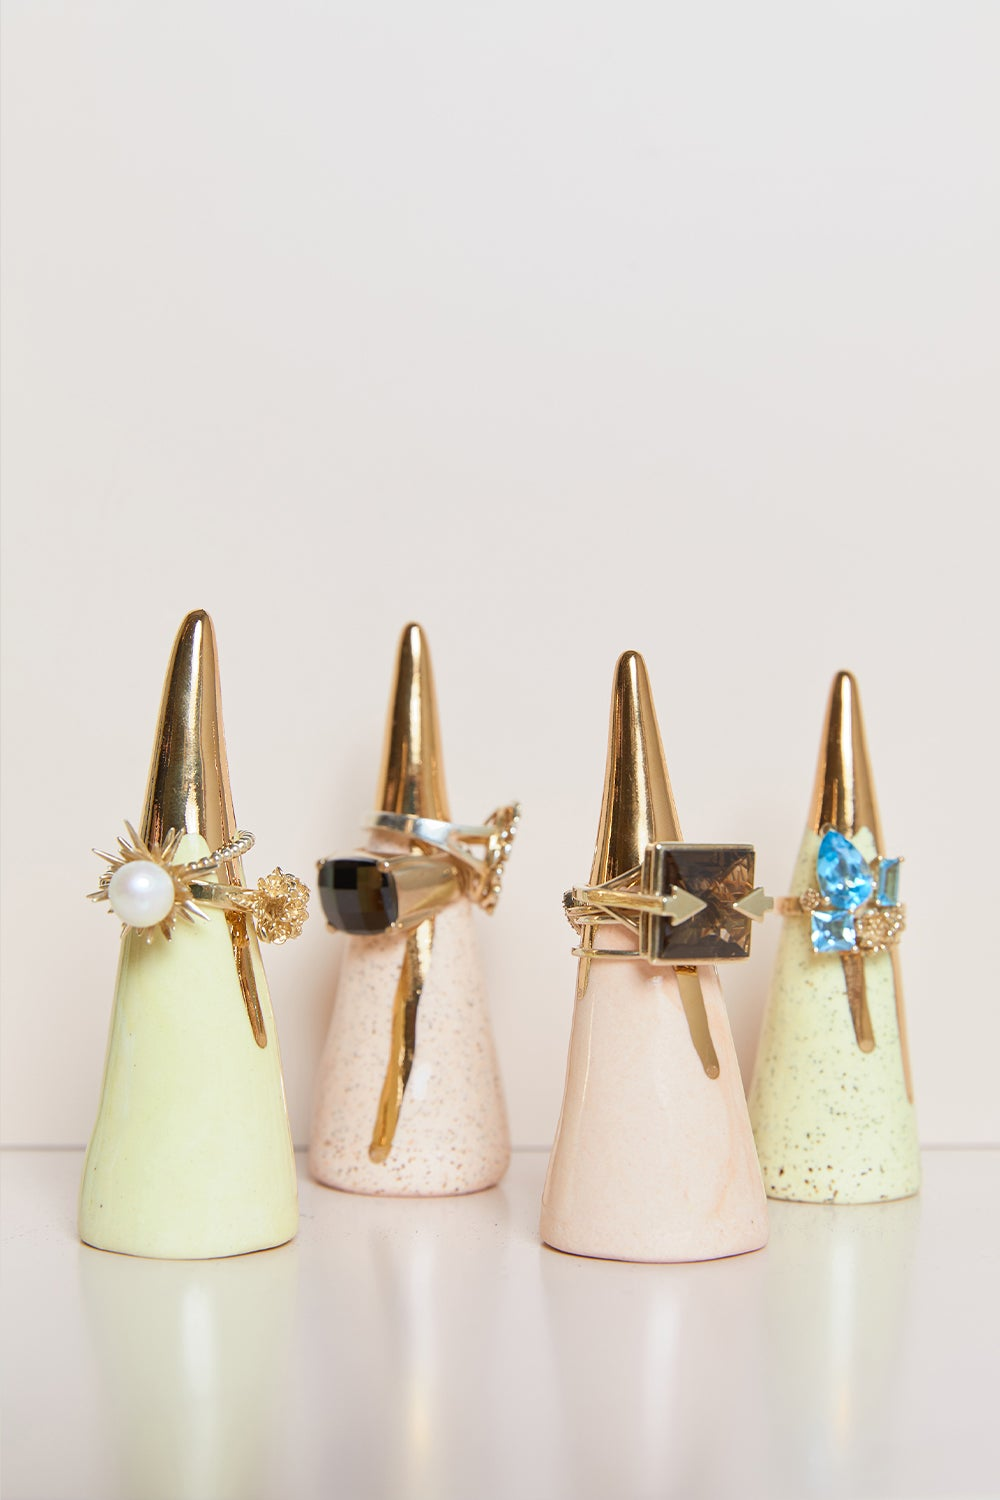 Claybird Tinted Ring Cone with Gold Drip Rim Speckled Peach